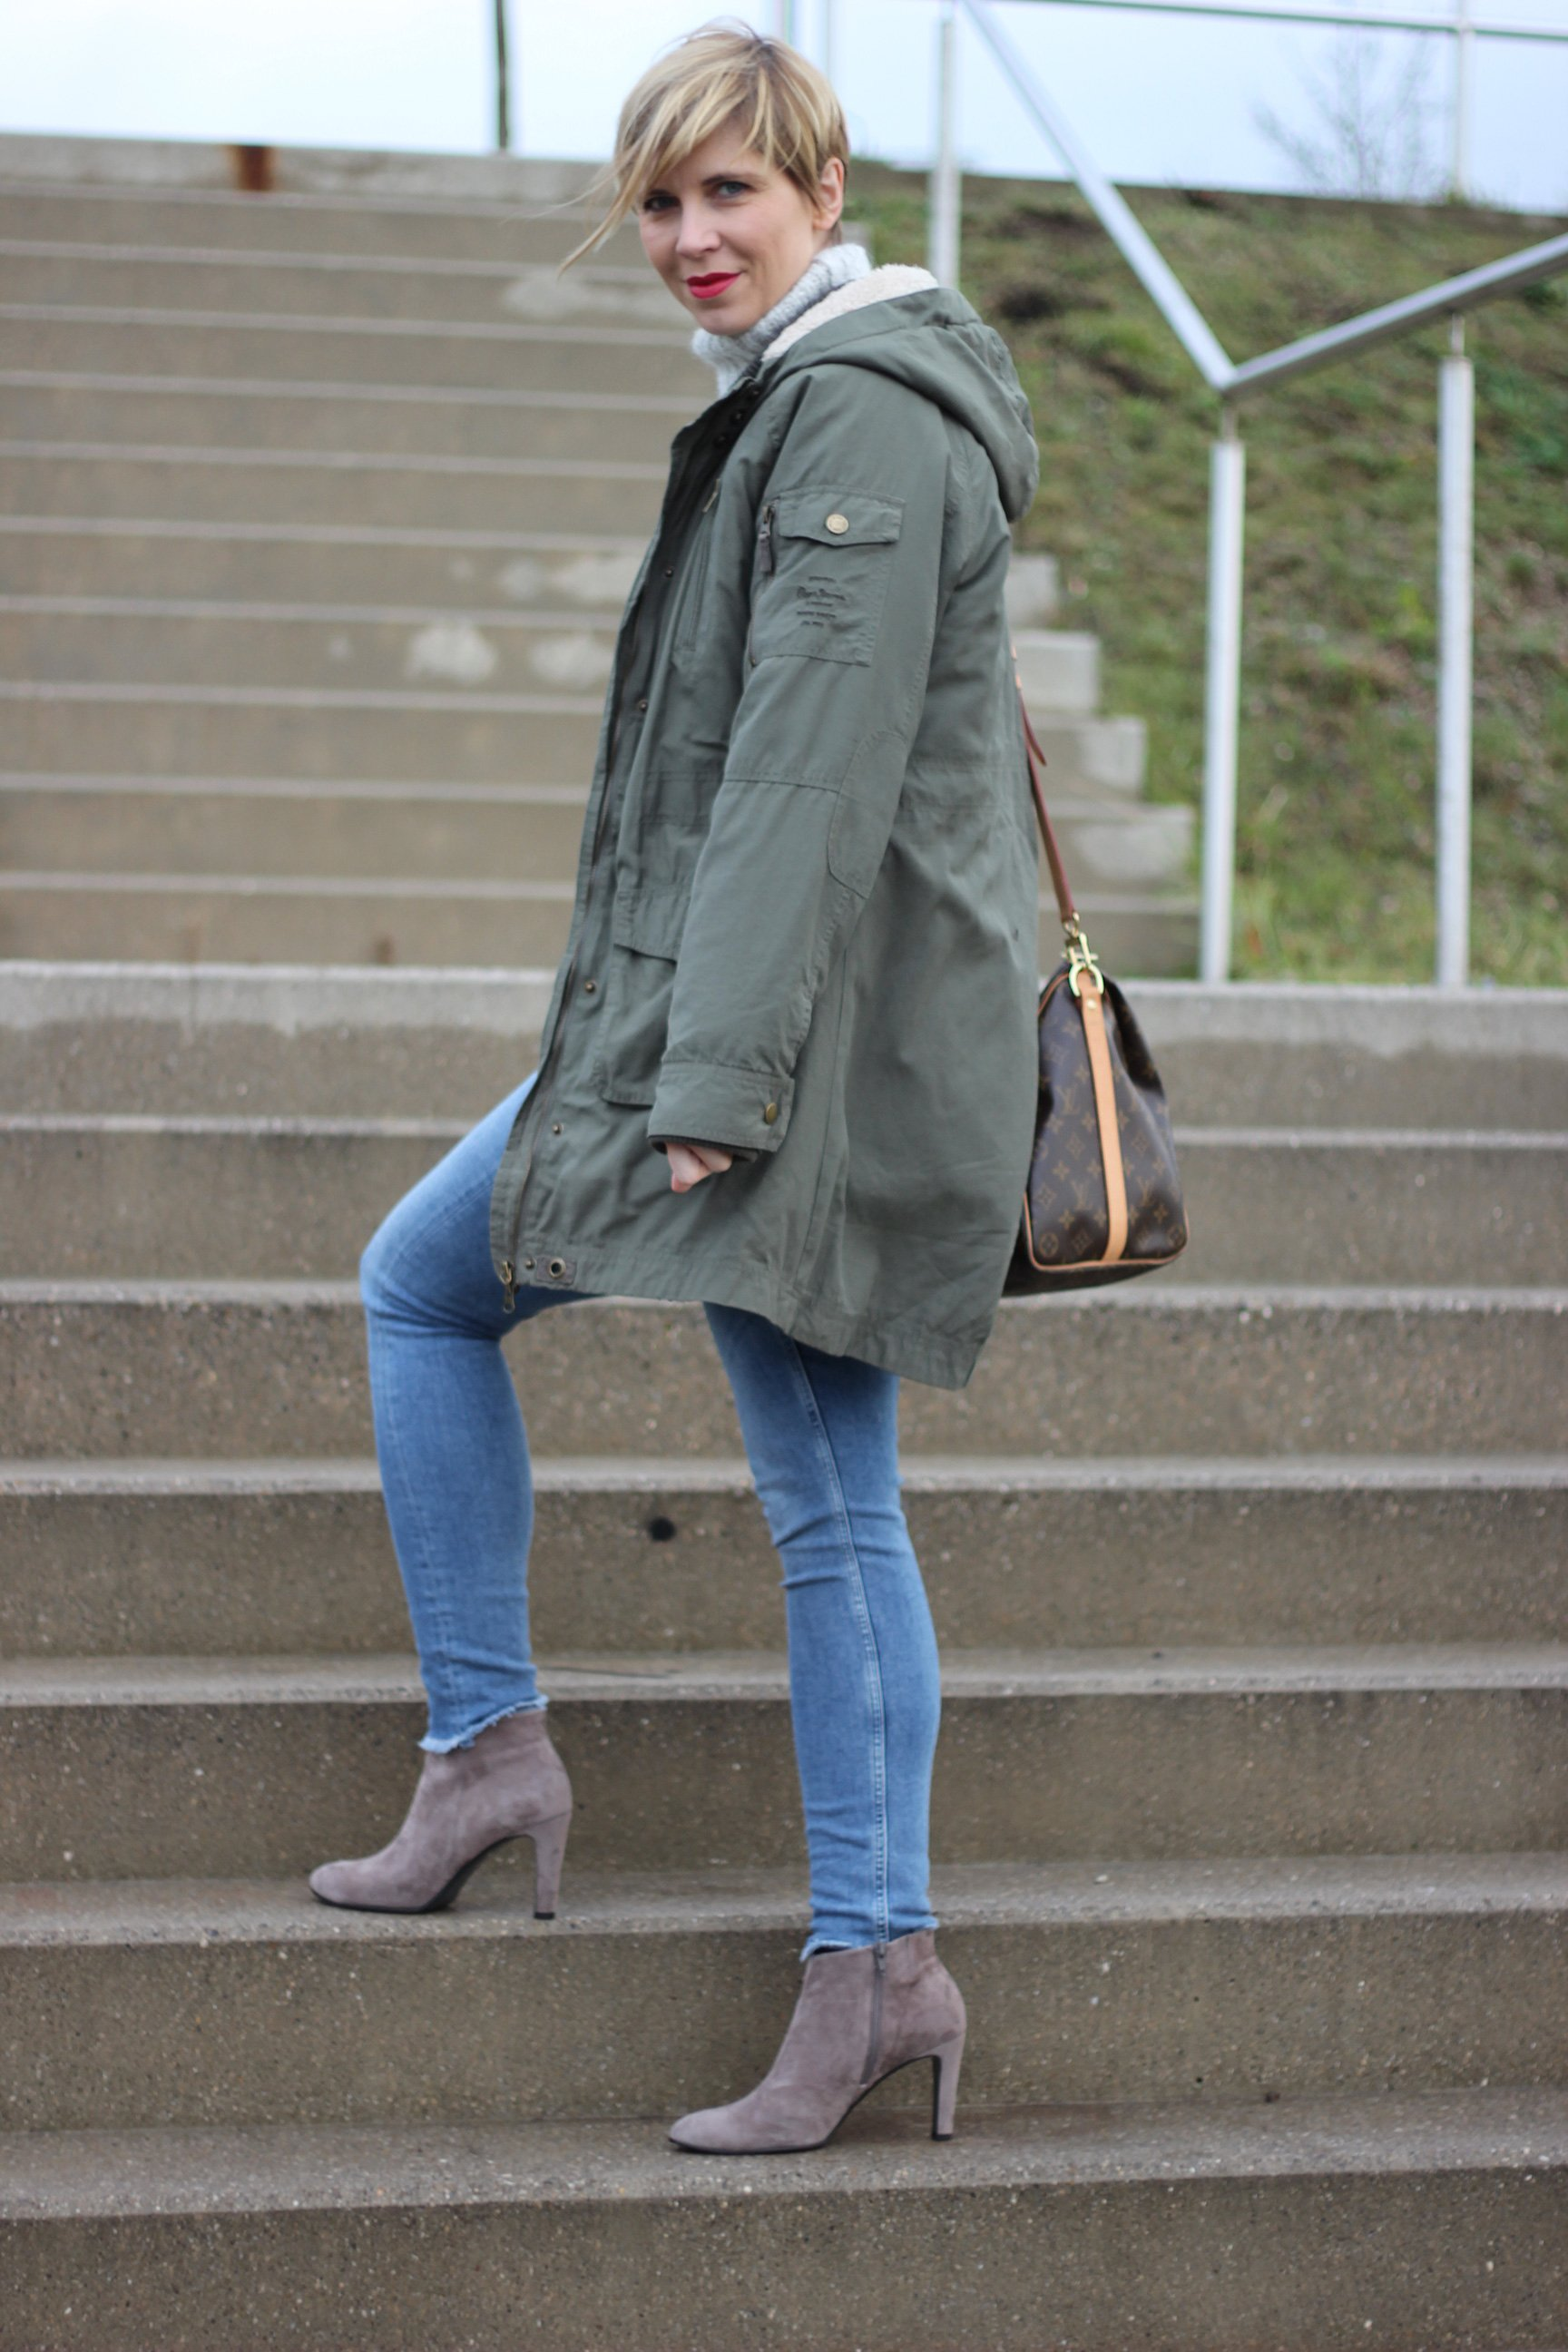 IMG_8830a_Zara_Rollkragen_casual_Jeans_Only_ConnyDoll_AHemadundahos_KennelundSchmenger_Boots_Marcopolo_Bluse